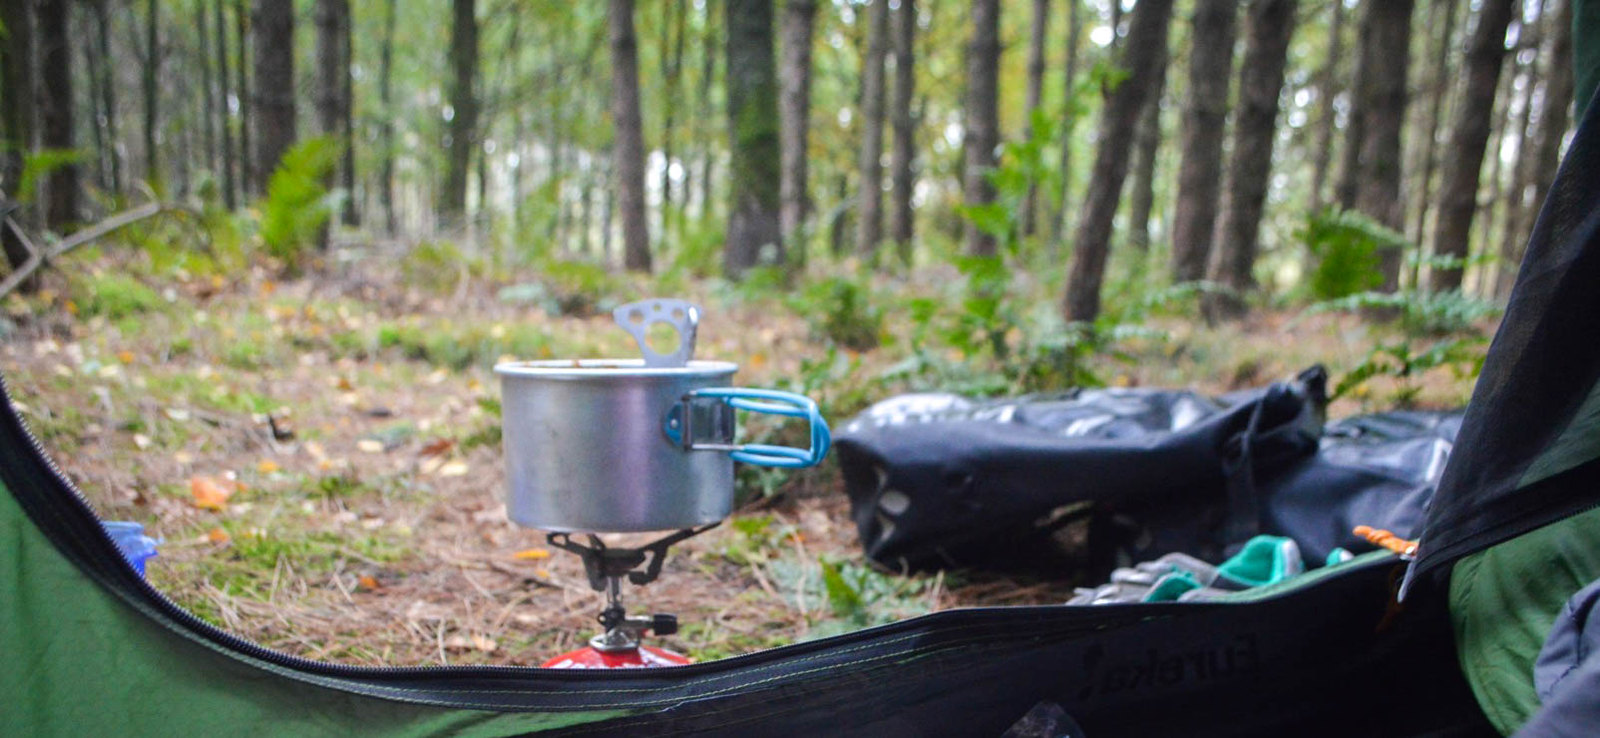 Breakfast during wildcamping